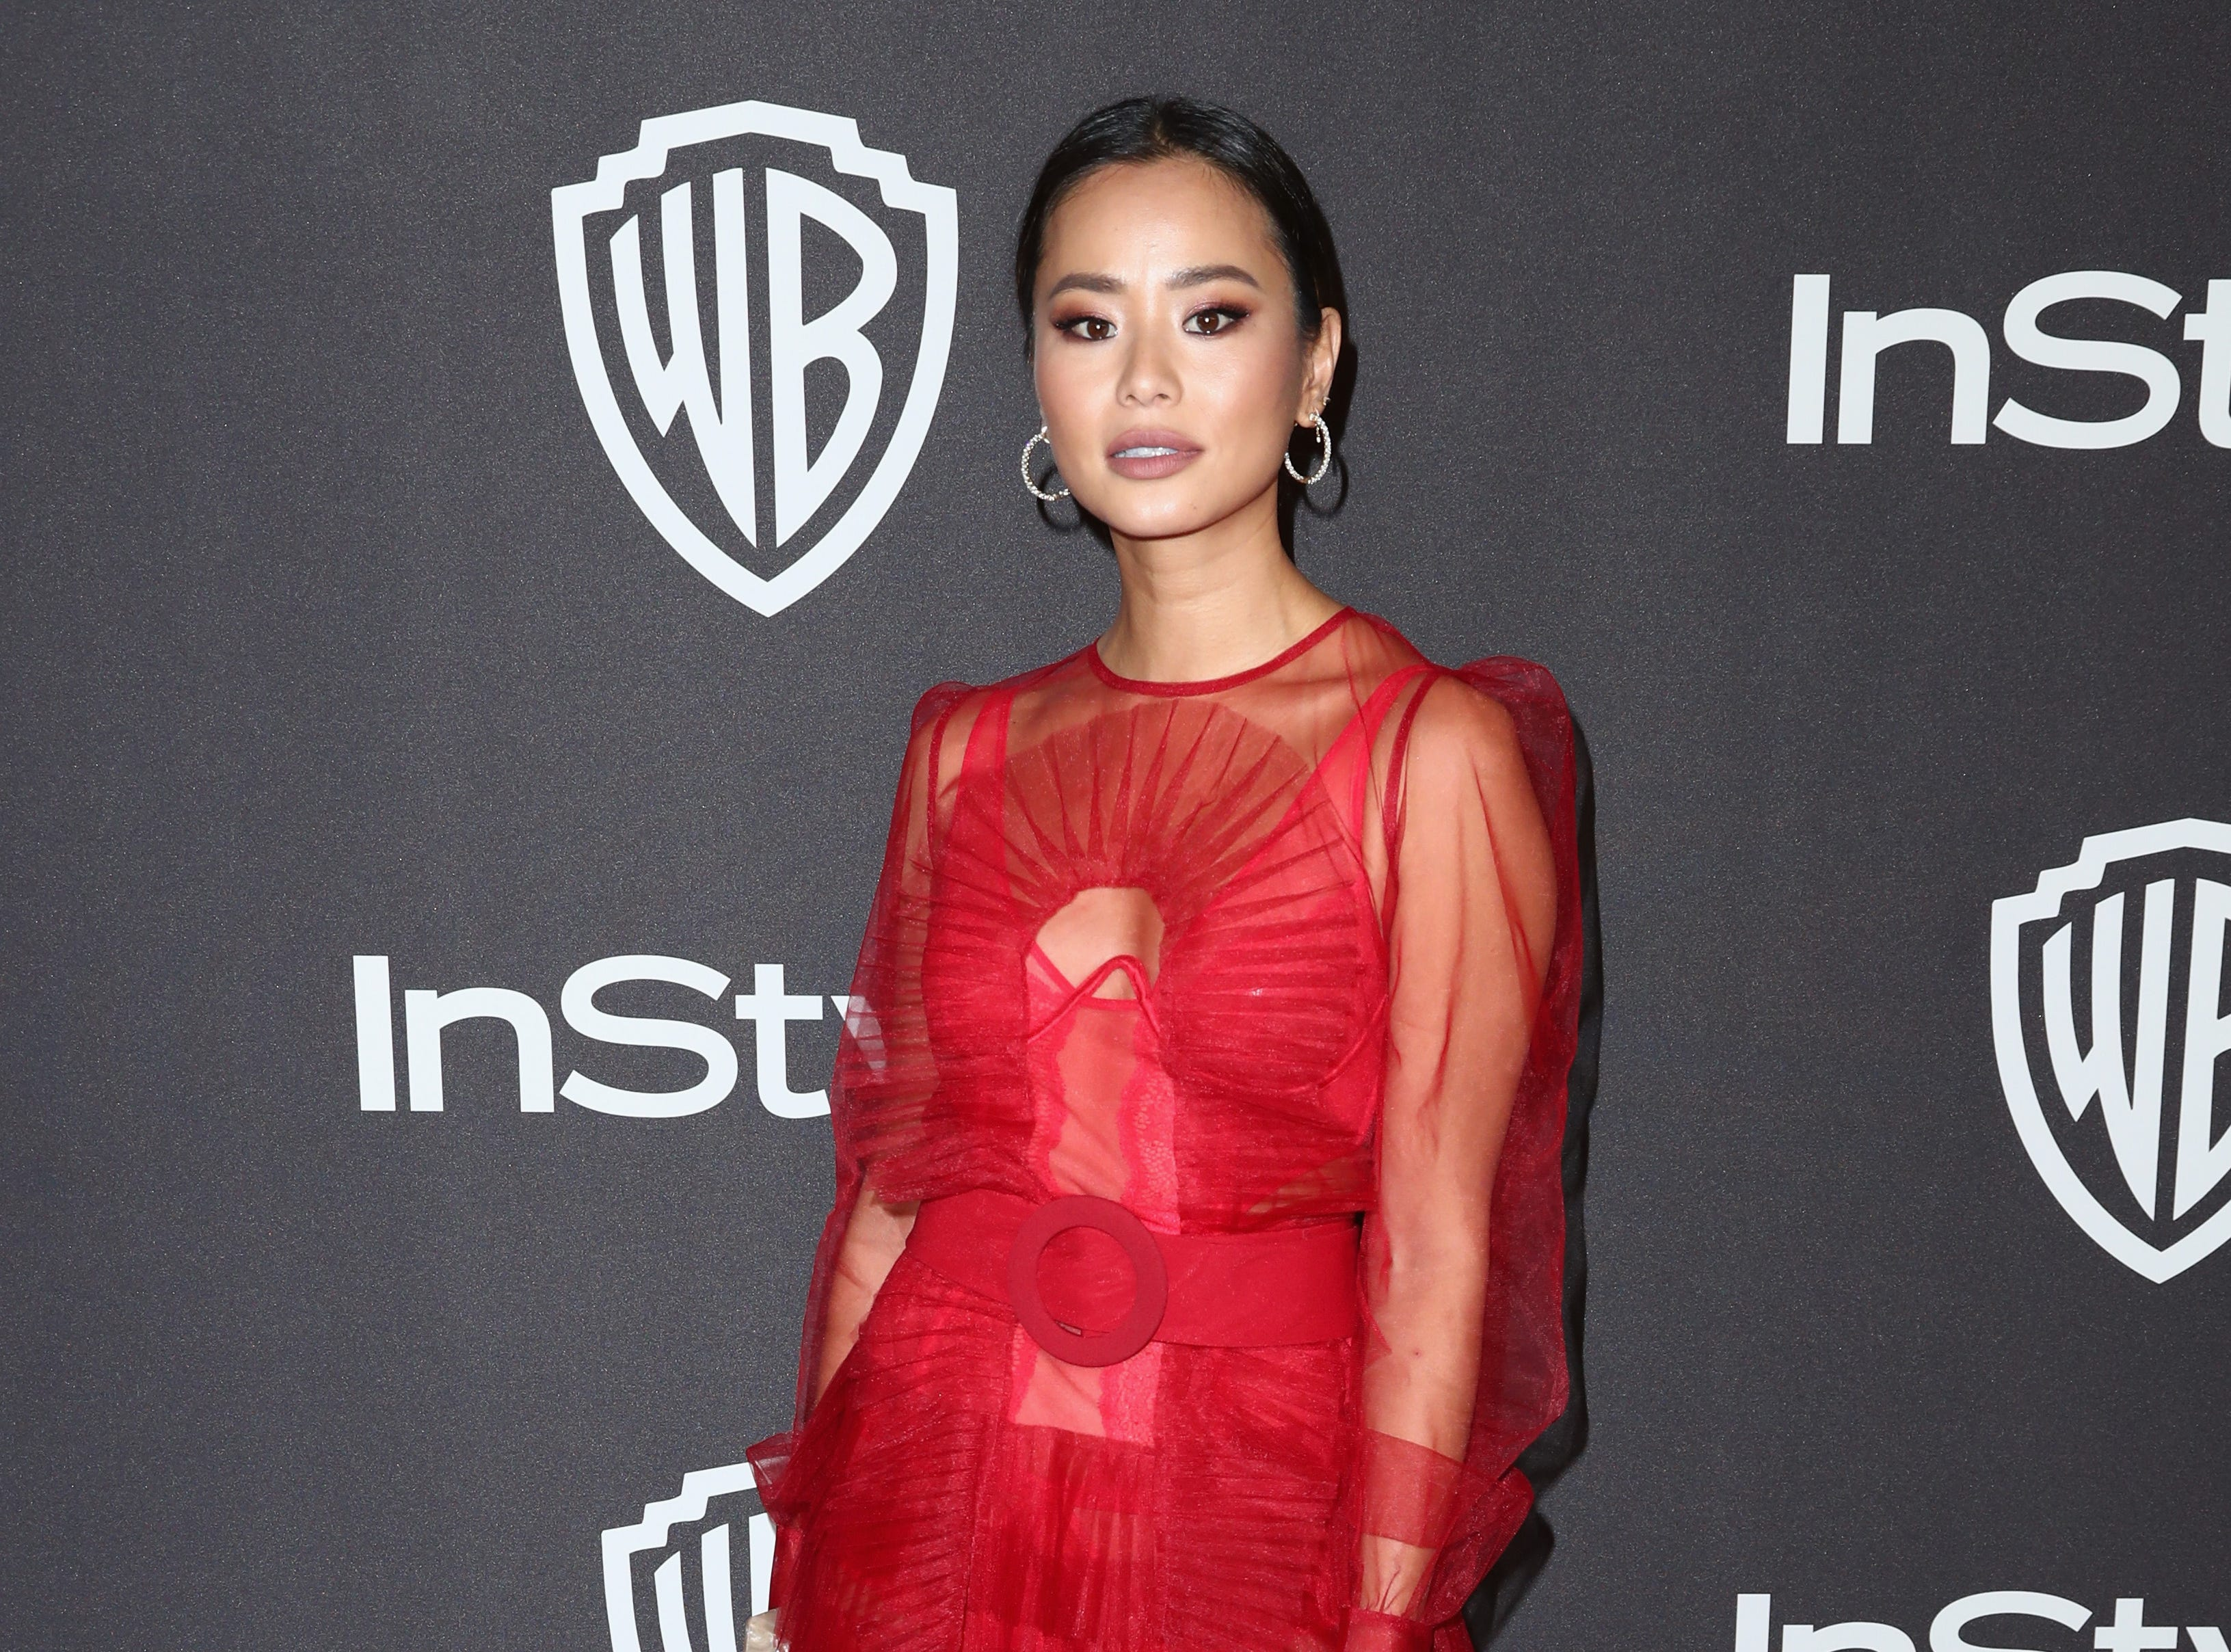 BEVERLY HILLS, CA - JANUARY 06:  Jamie Chung attends the InStyle And Warner Bros. Golden Globes After Party 2019 at The Beverly Hilton Hotel on January 6, 2019 in Beverly Hills, California.  (Photo by Rich Fury/Getty Images) ORG XMIT: 775268365 ORIG FILE ID: 1078498678